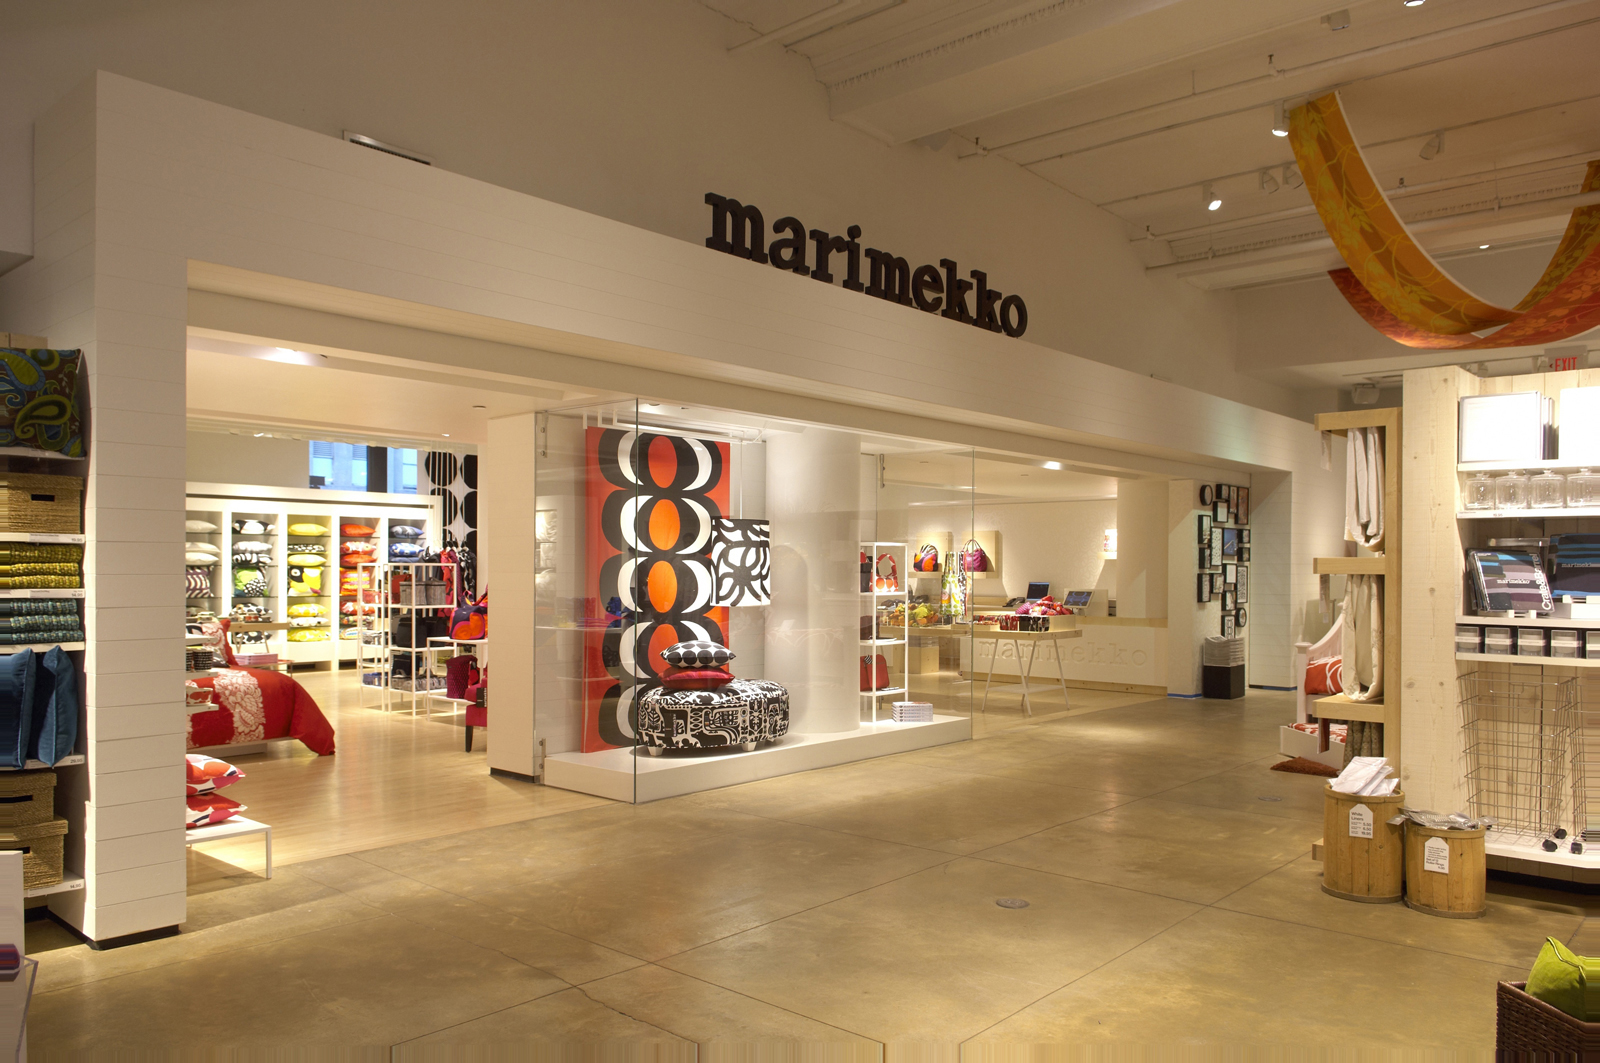 "The 1,800-square-foot <a href=""http://www.crateandbarrel.com/the-marimekko-shop/"">Marimekko shop</a> is located inside Crate and Barrel's New York SoHo store and opened October 13th. Photo ©2010 Wellington Lee"